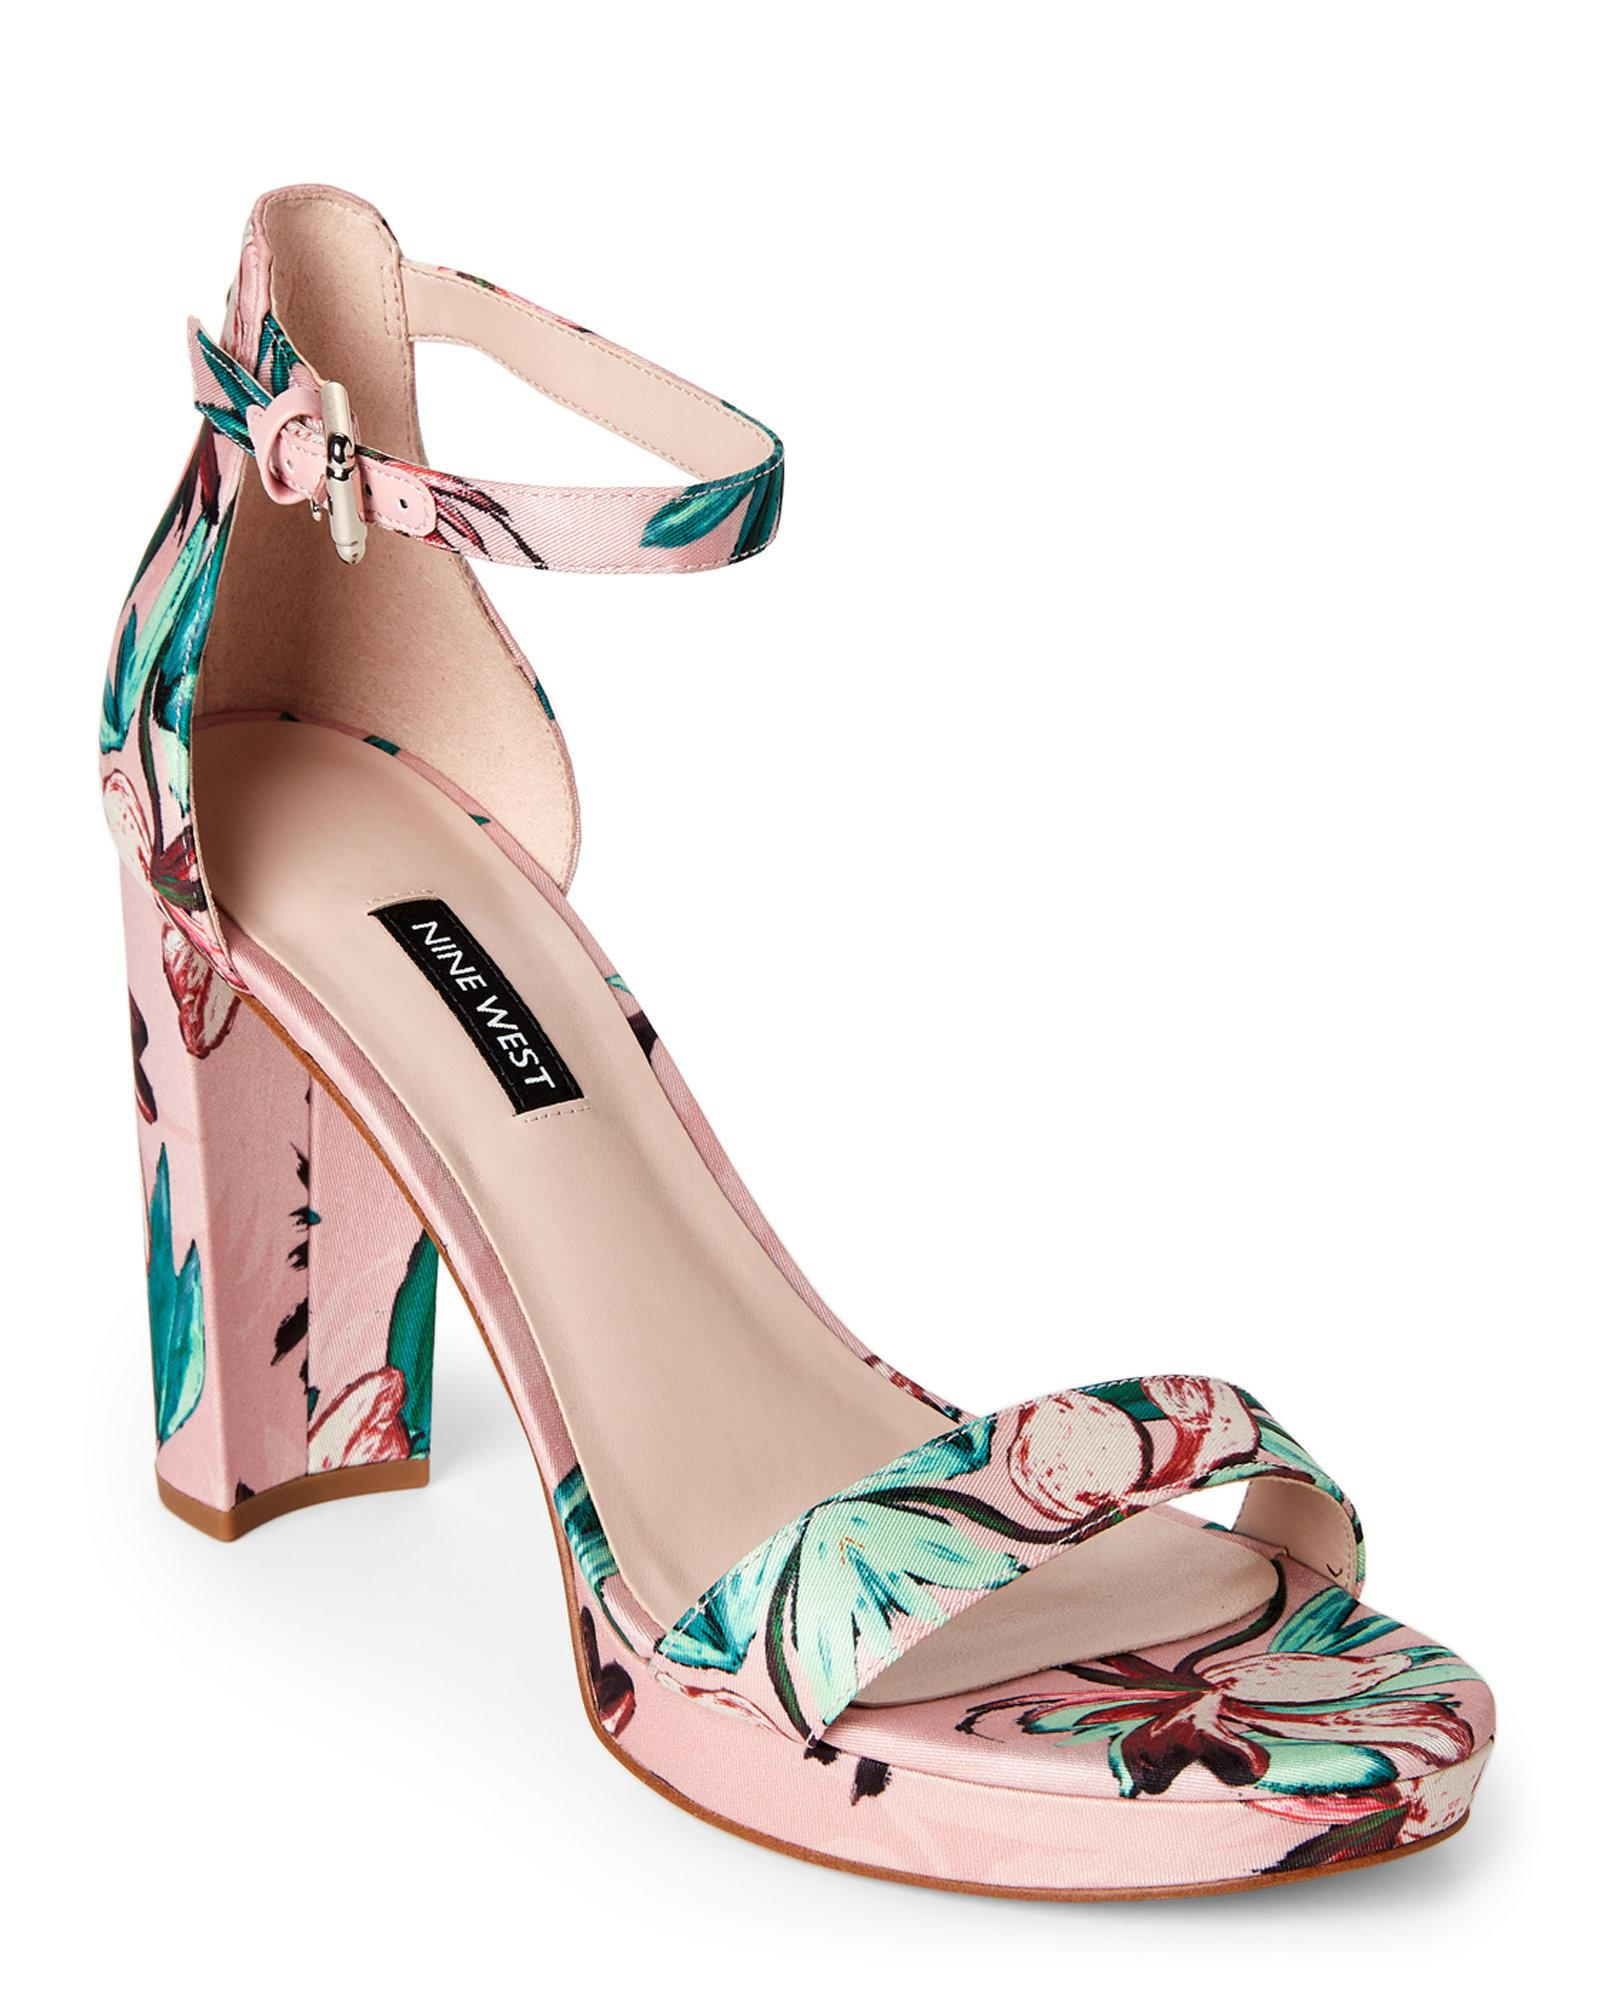 0be023ba7d8 Lyst - Nine West Pink Dempsey Floral Satin Block Heel Sandals in Pink